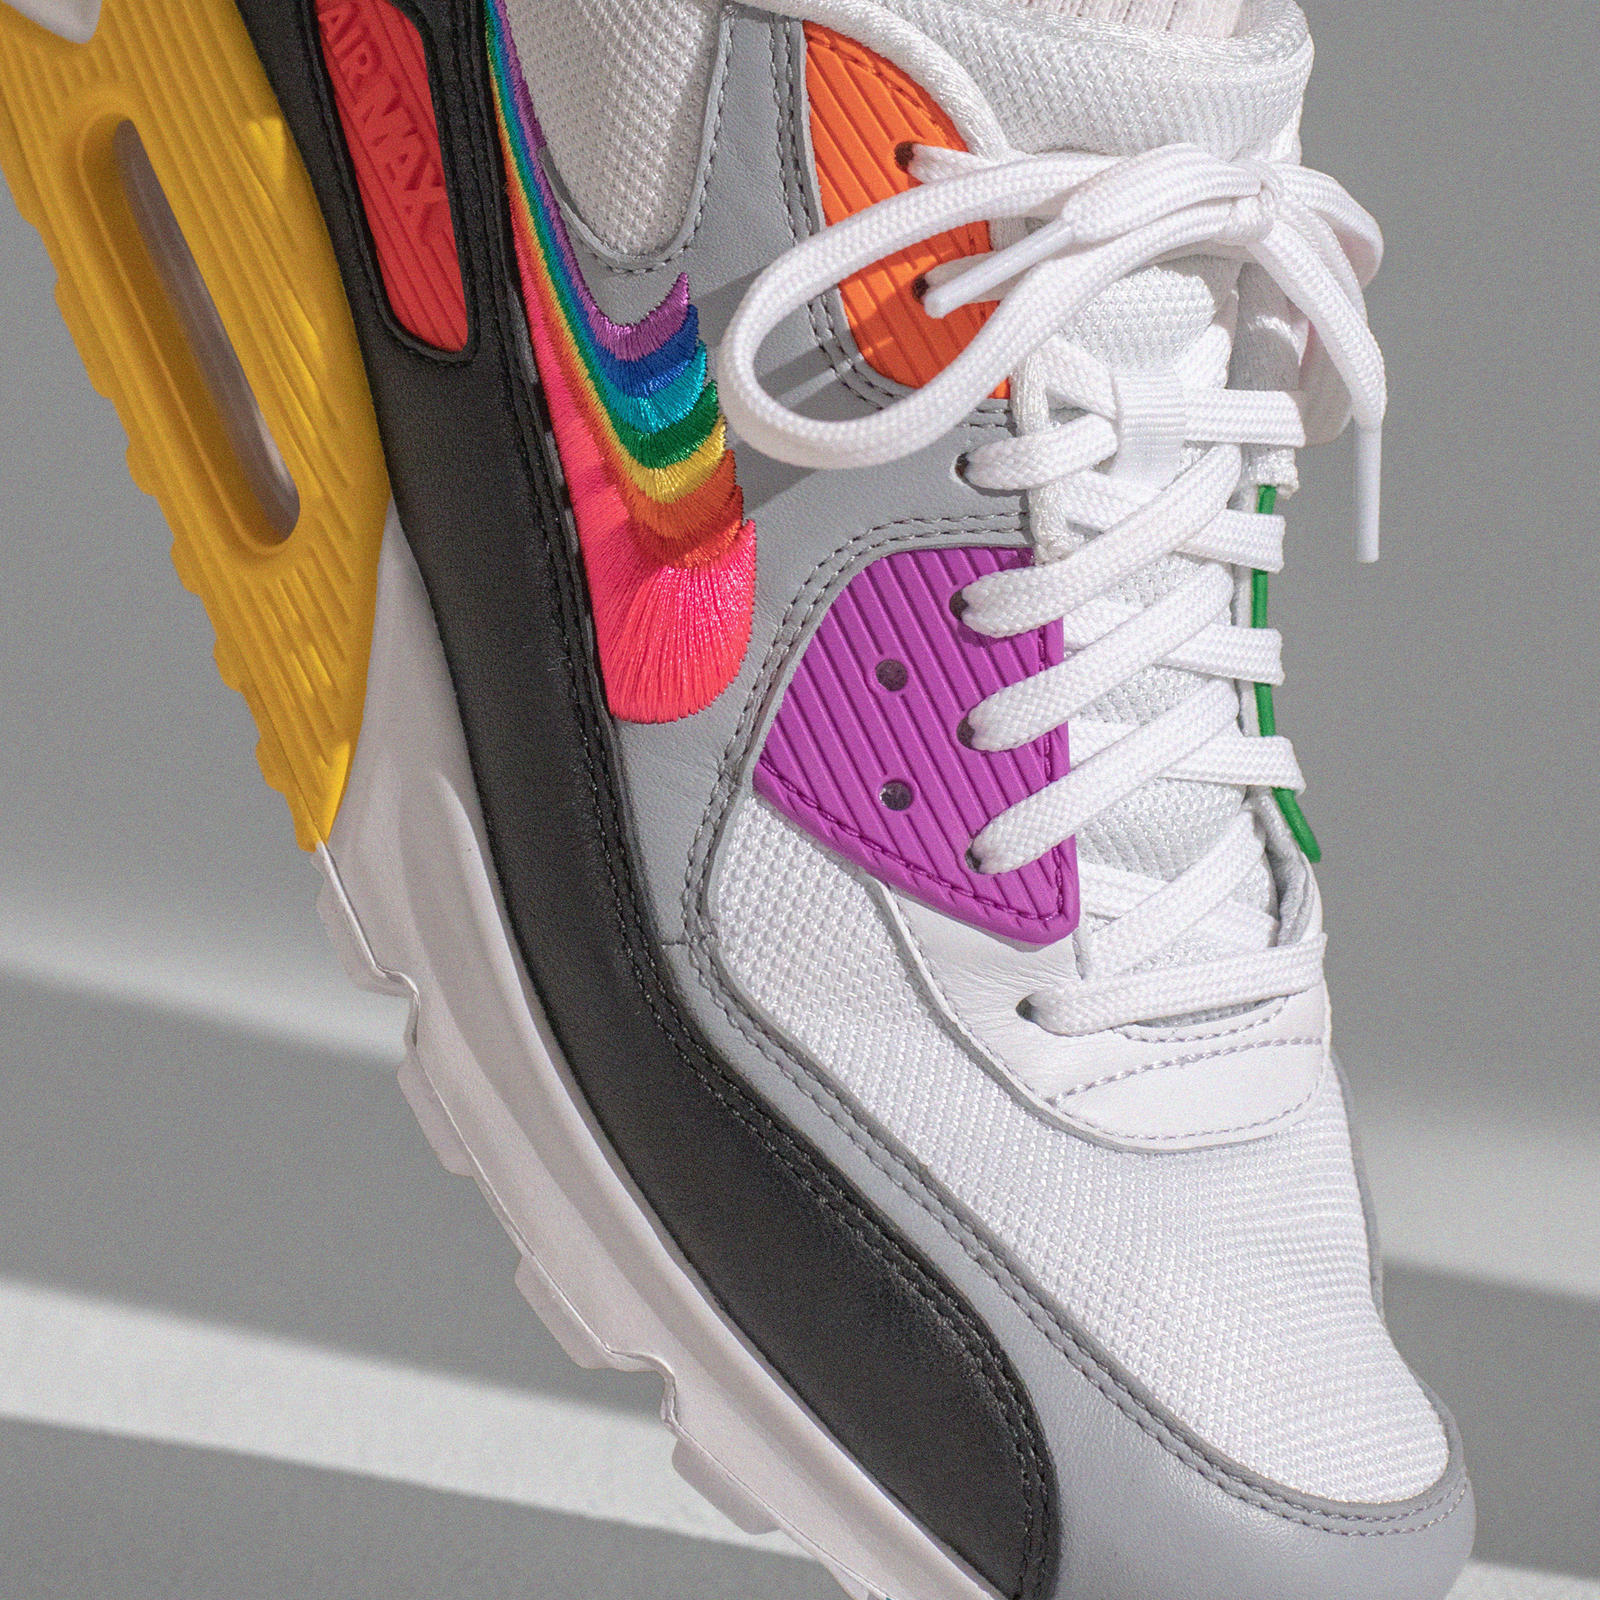 Nike Nike Betrue Collection Collection Betrue News Nike News 2019 2019 oBeCxd